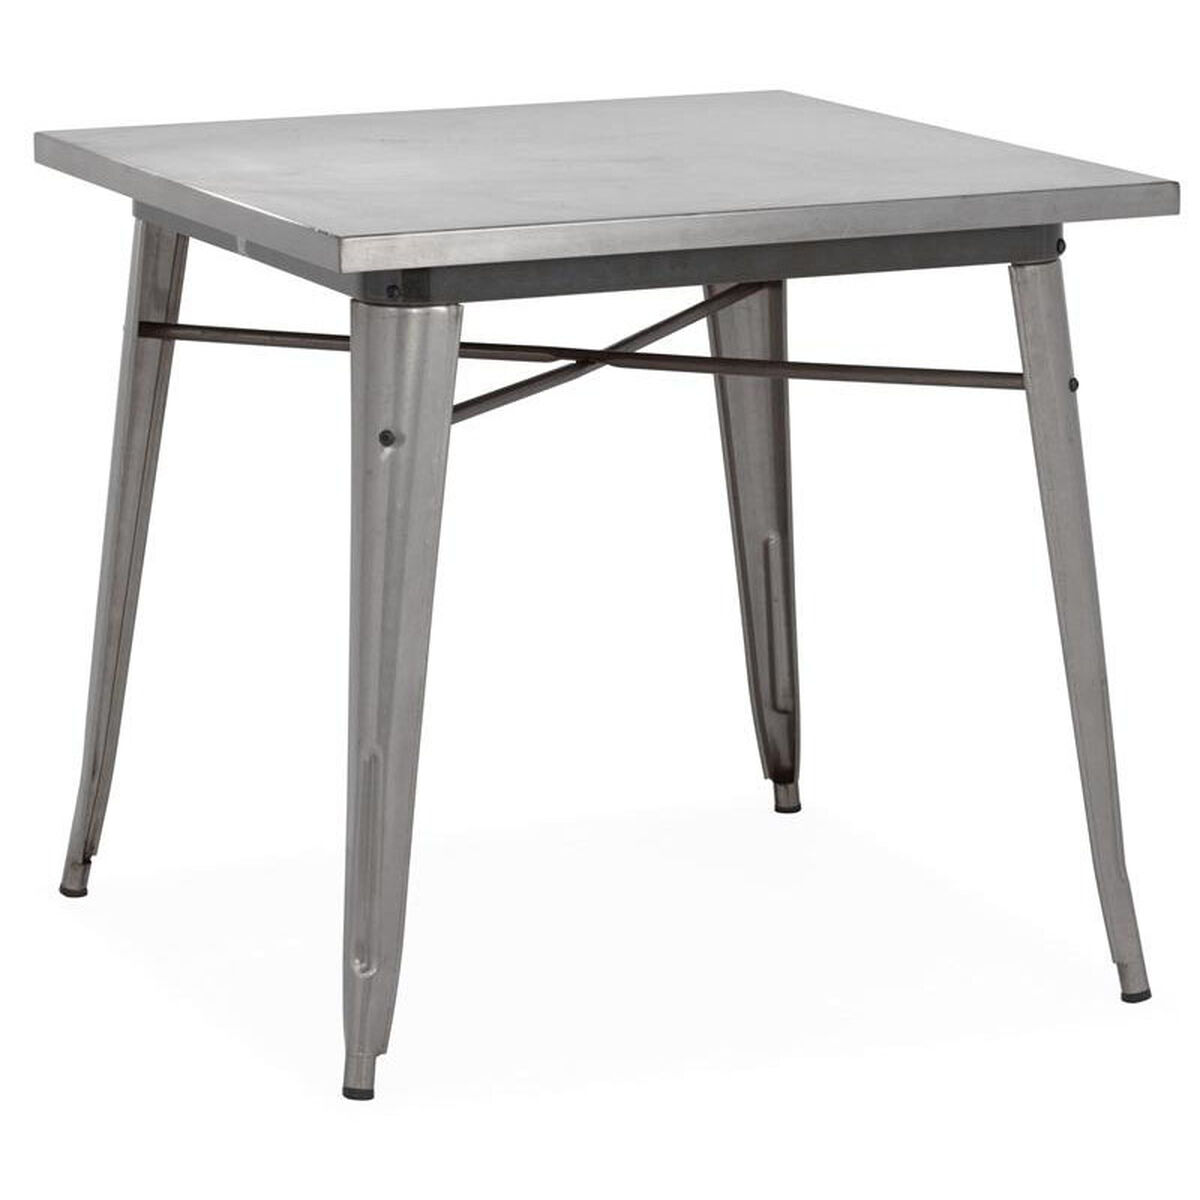 Dreux Gunmetal Dining Table Ls 9120 Gun